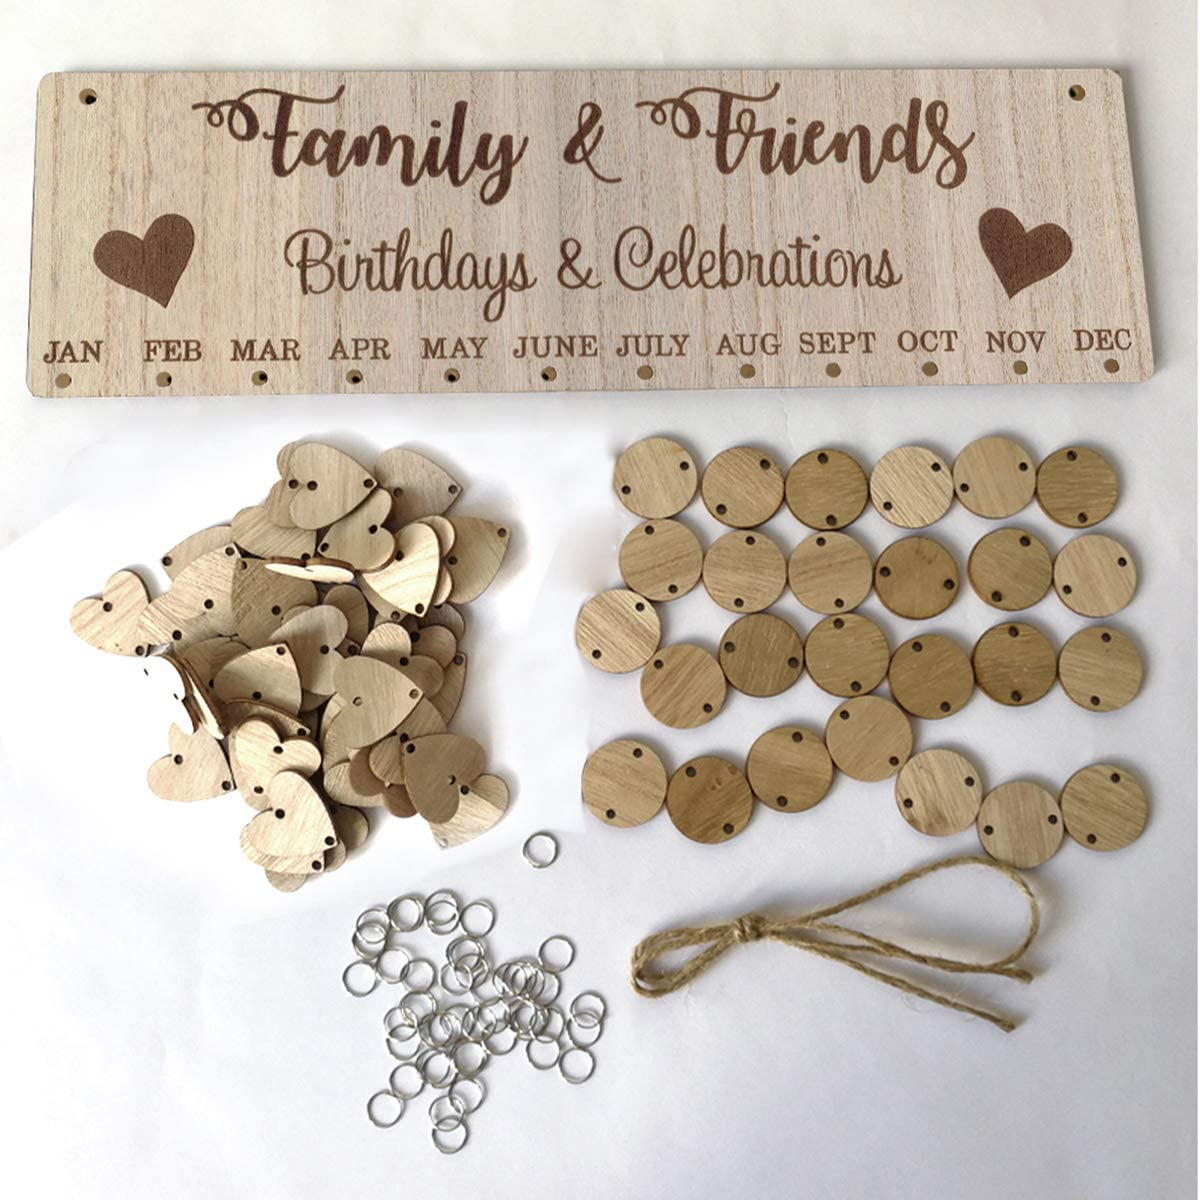 Vosarea Famliy and Friends Birthdays and Celebrations Reminder Calendar Wooden DIY Calendar Birthday Anniversary Reminder Hanging Decorcation